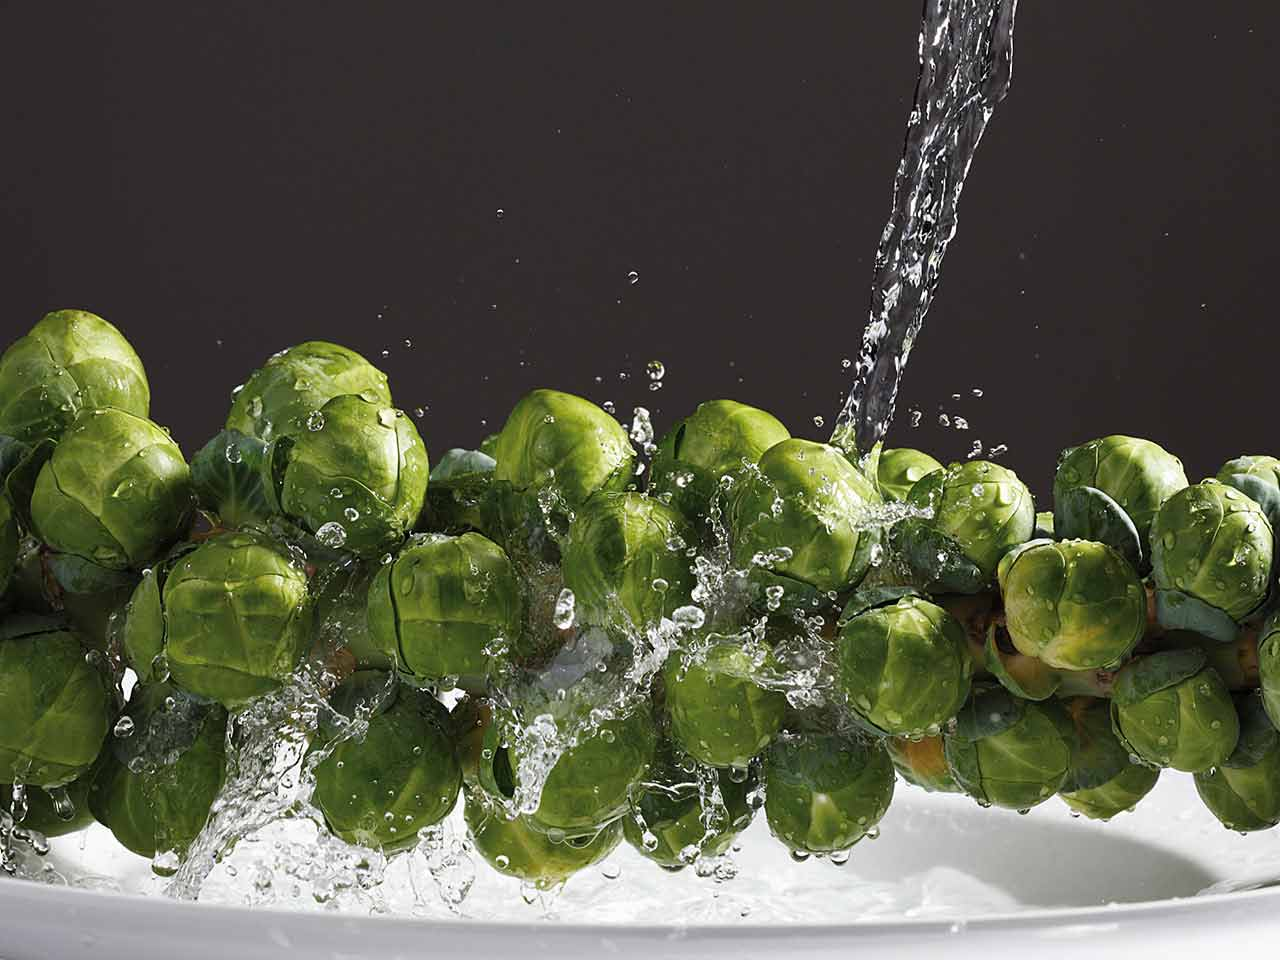 Brussel sprout stalk being rinsed